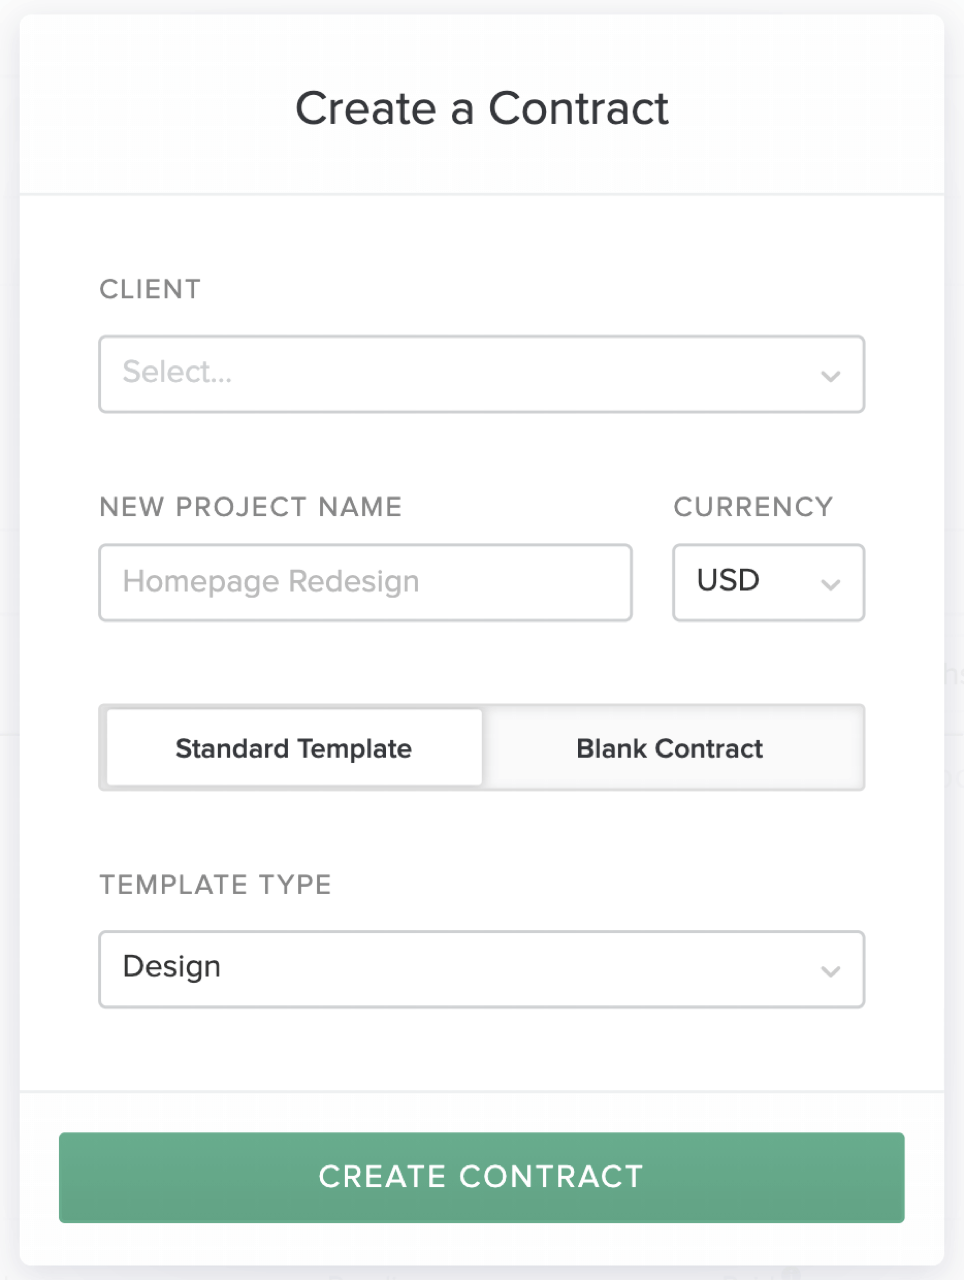 Contract template selection